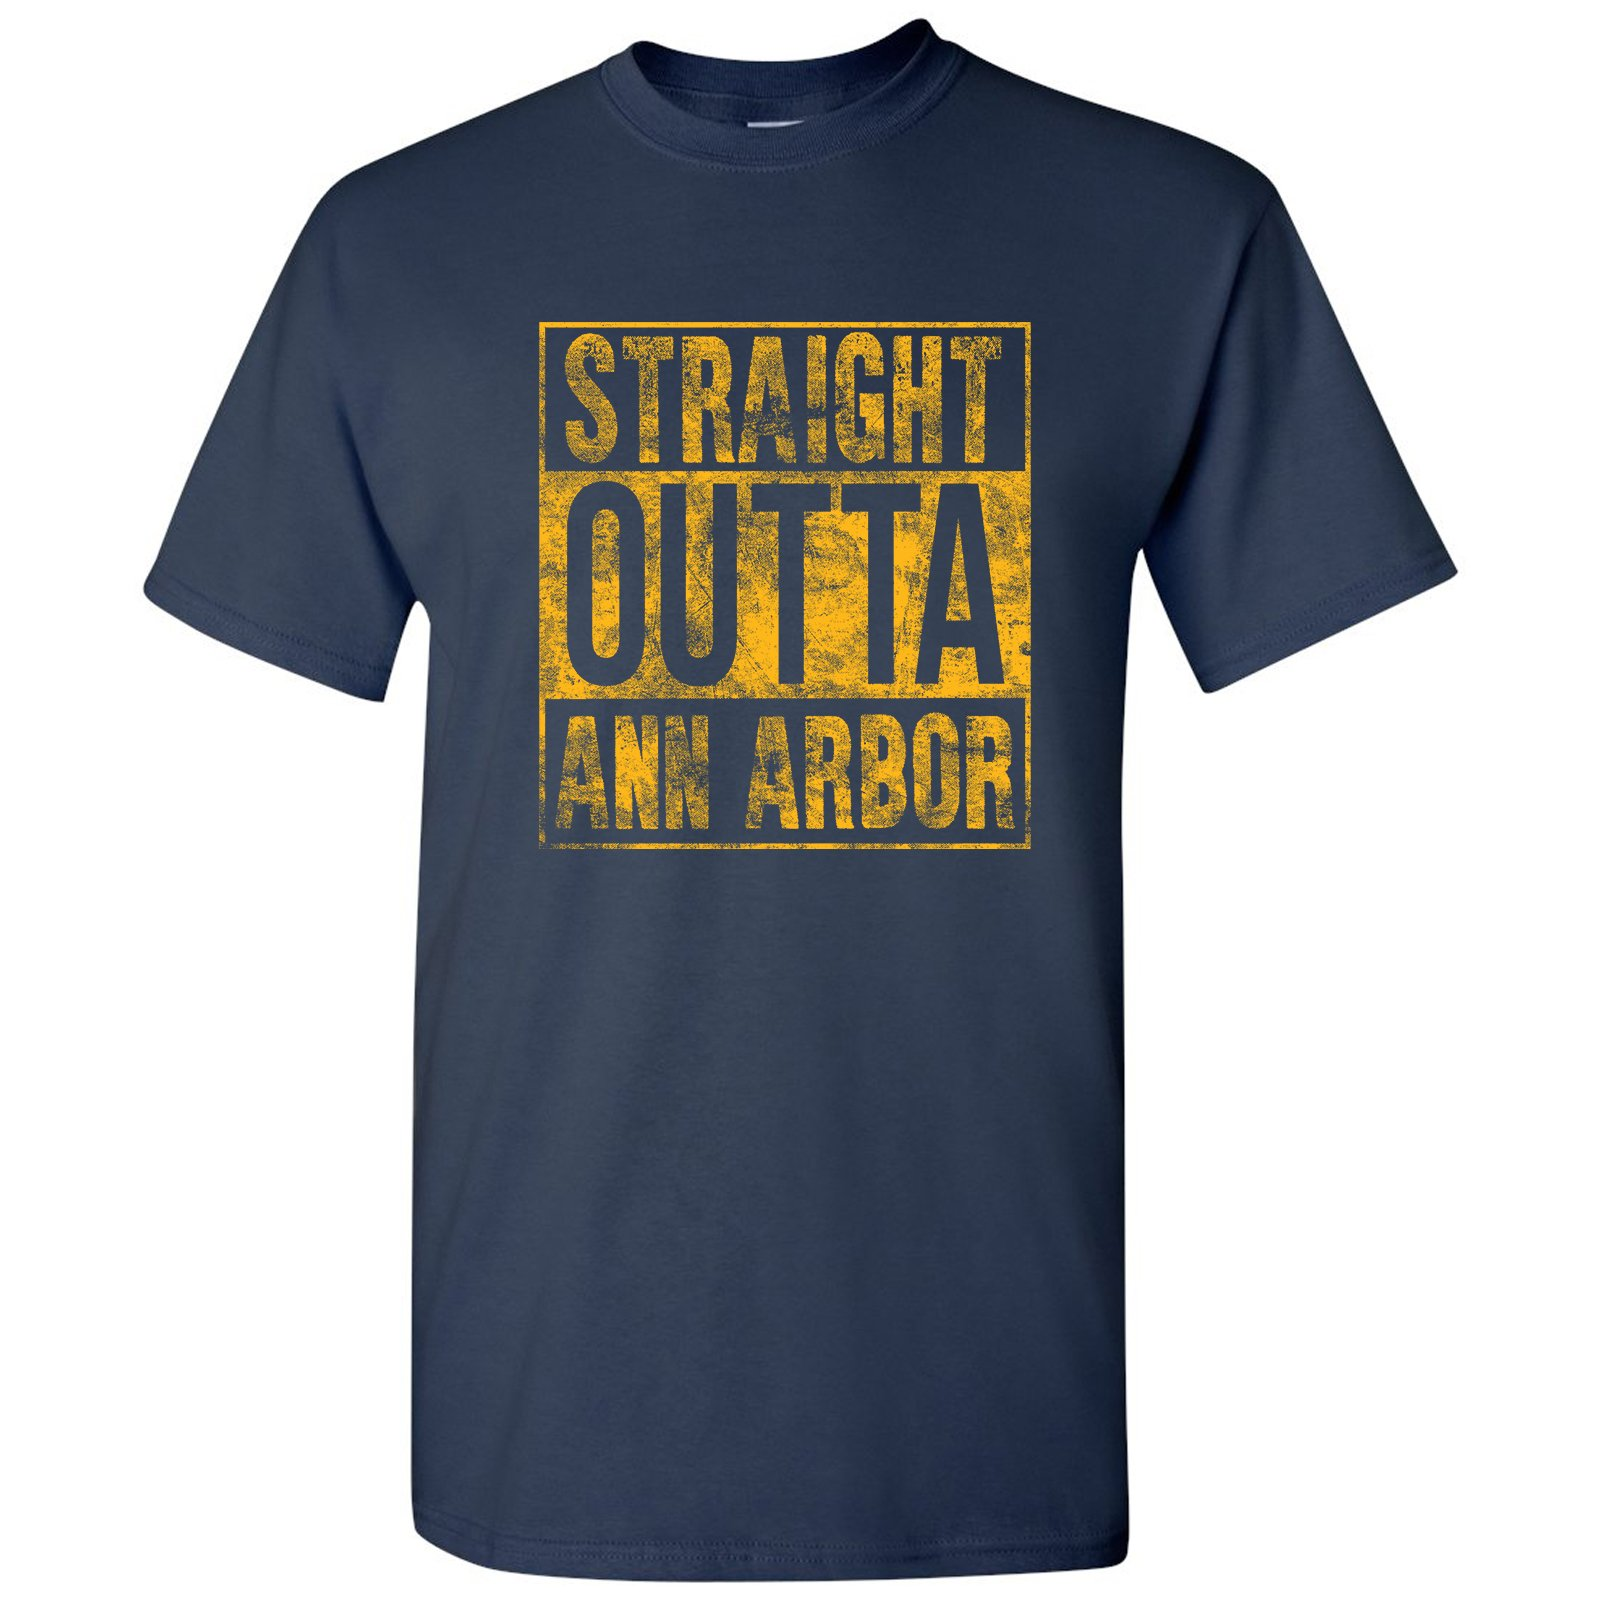 Straight Outta Ann Arbor Basic Cotton T-Shirt - 2X-Large - Navy